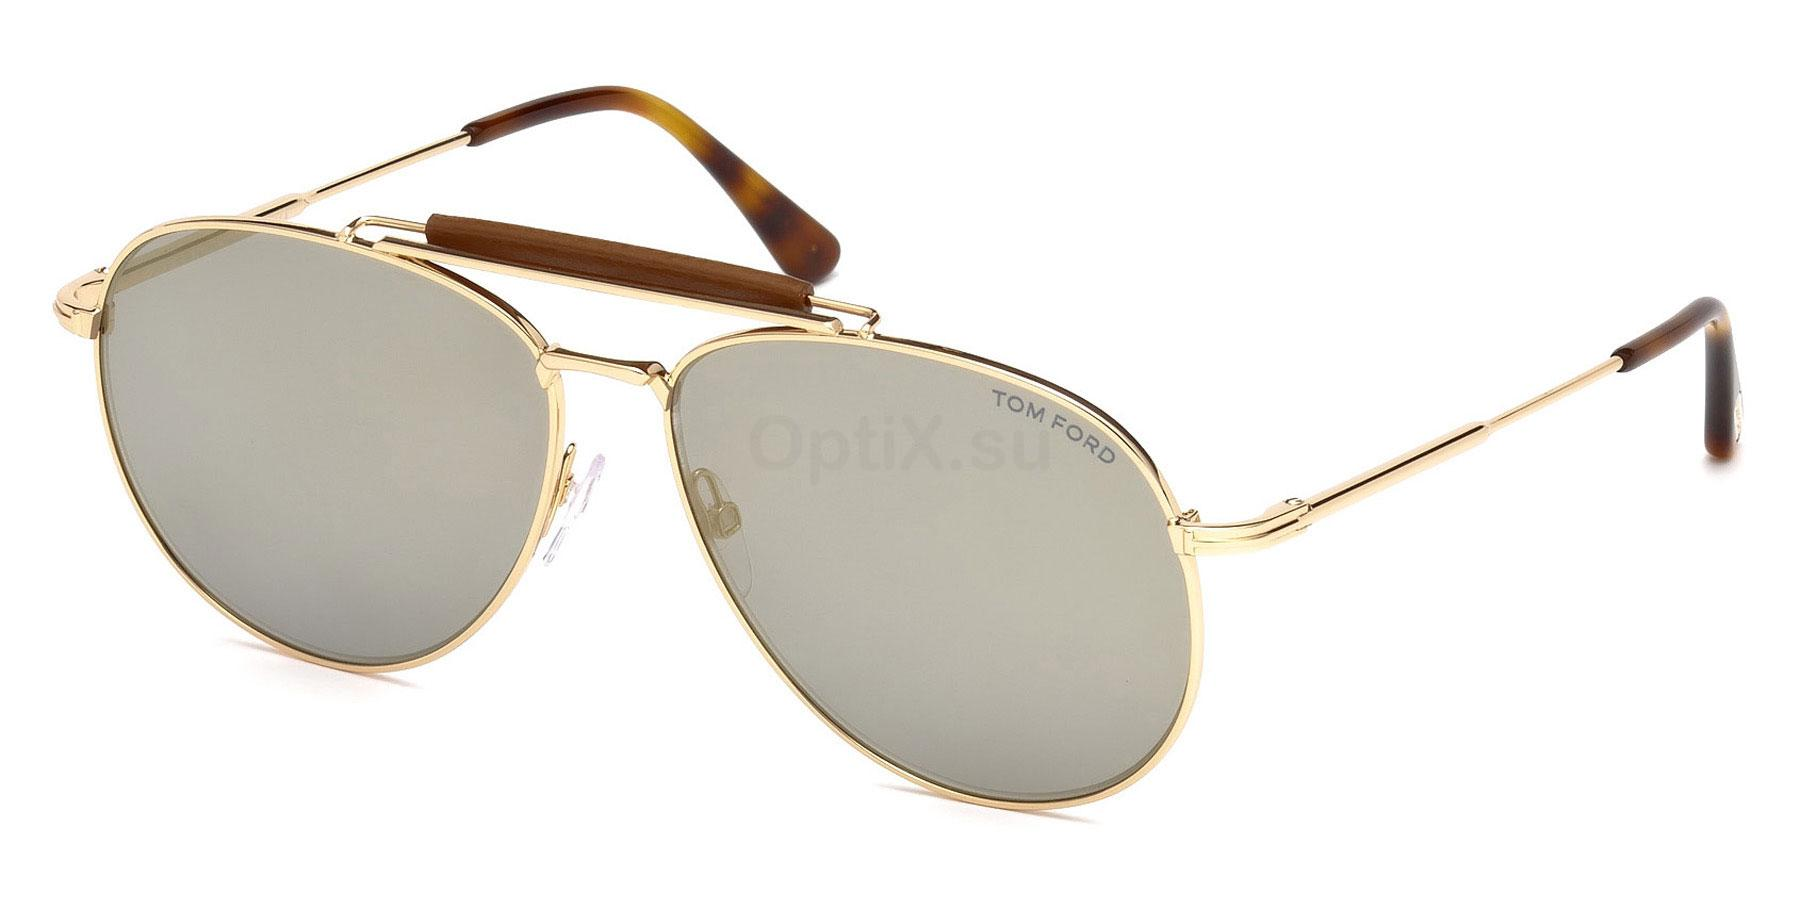 28C FT0536 Sunglasses, Tom Ford